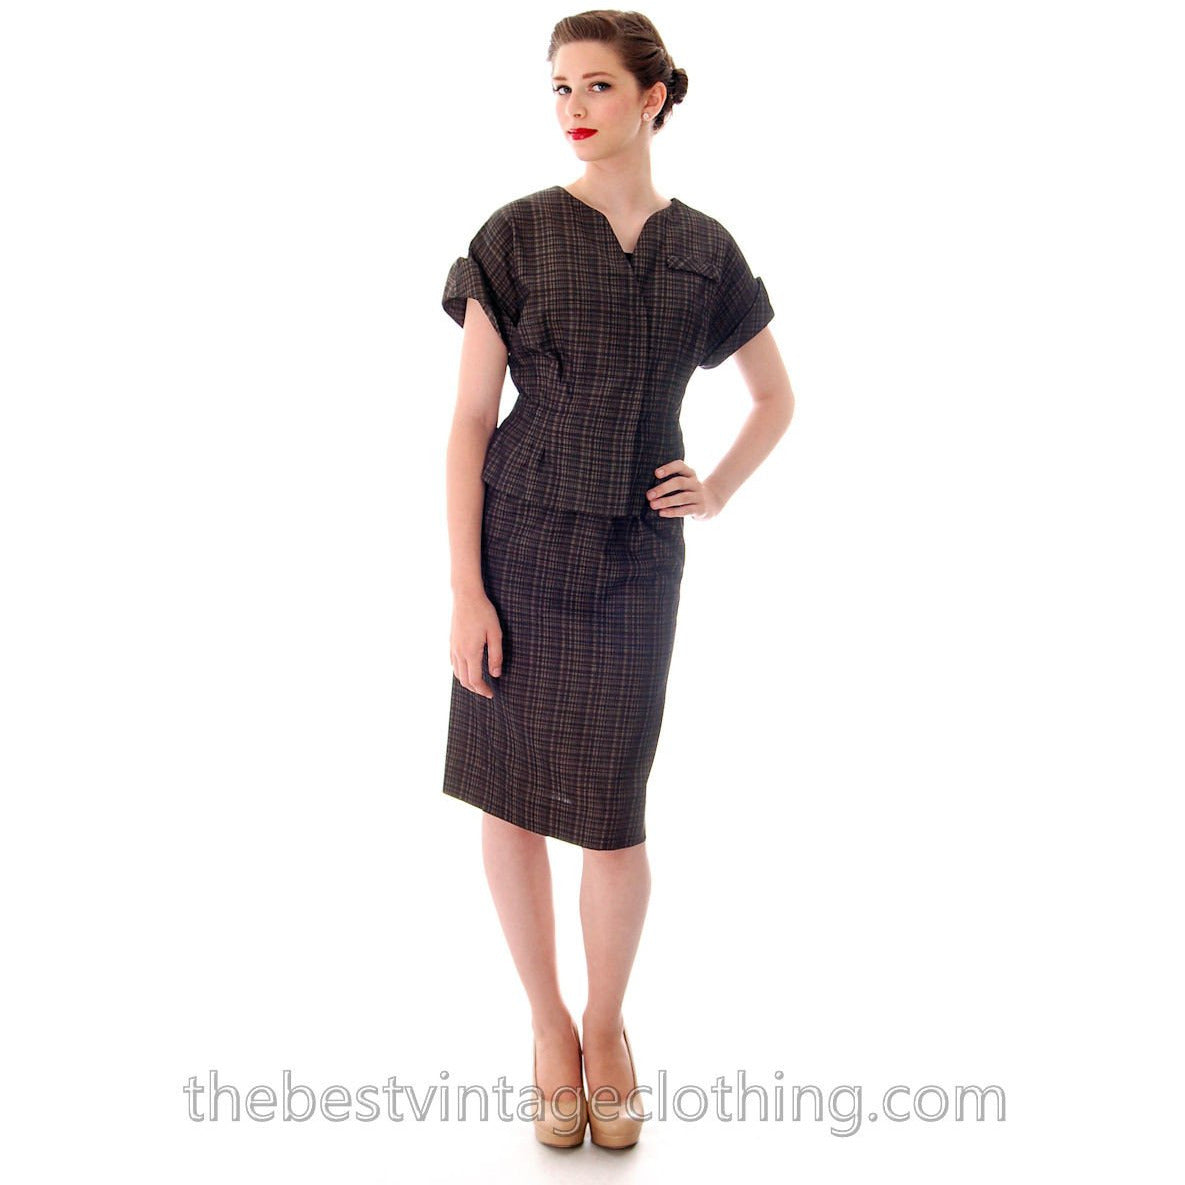 Vintage  1950'S Silk Suit Short Sleeves Plaid Blums-Vogue Unique 38-25-36 High Quality - The Best Vintage Clothing  - 1